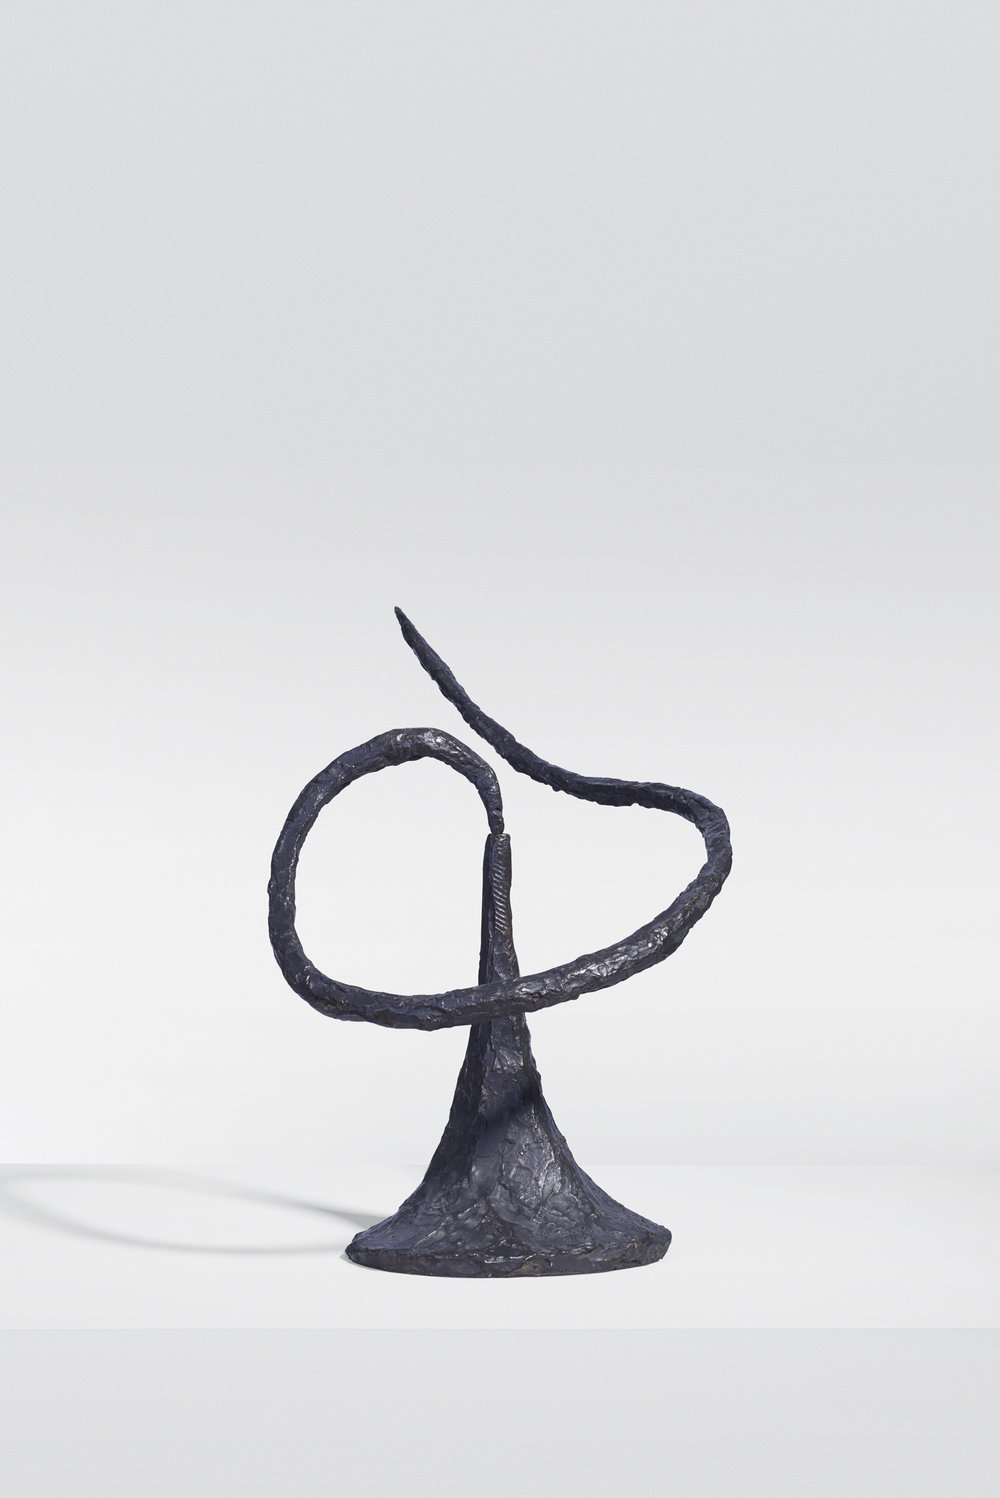 Calder_Snake_On_a_Post_Sequence_001_final.jpg